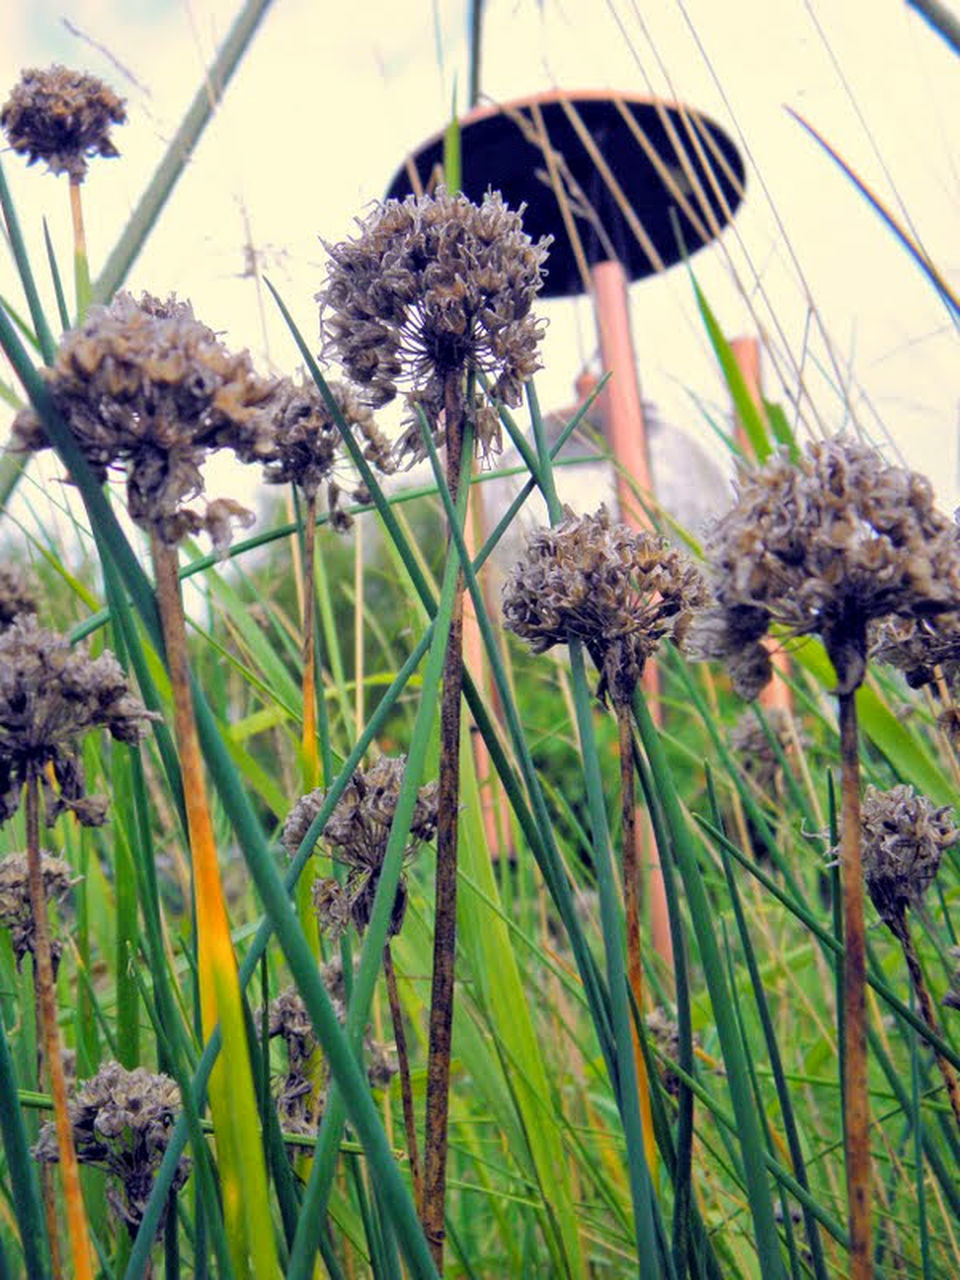 flower, plant, fragility, nature, growth, flower head, thistle, no people, beauty in nature, wilted plant, close-up, freshness, day, outdoors